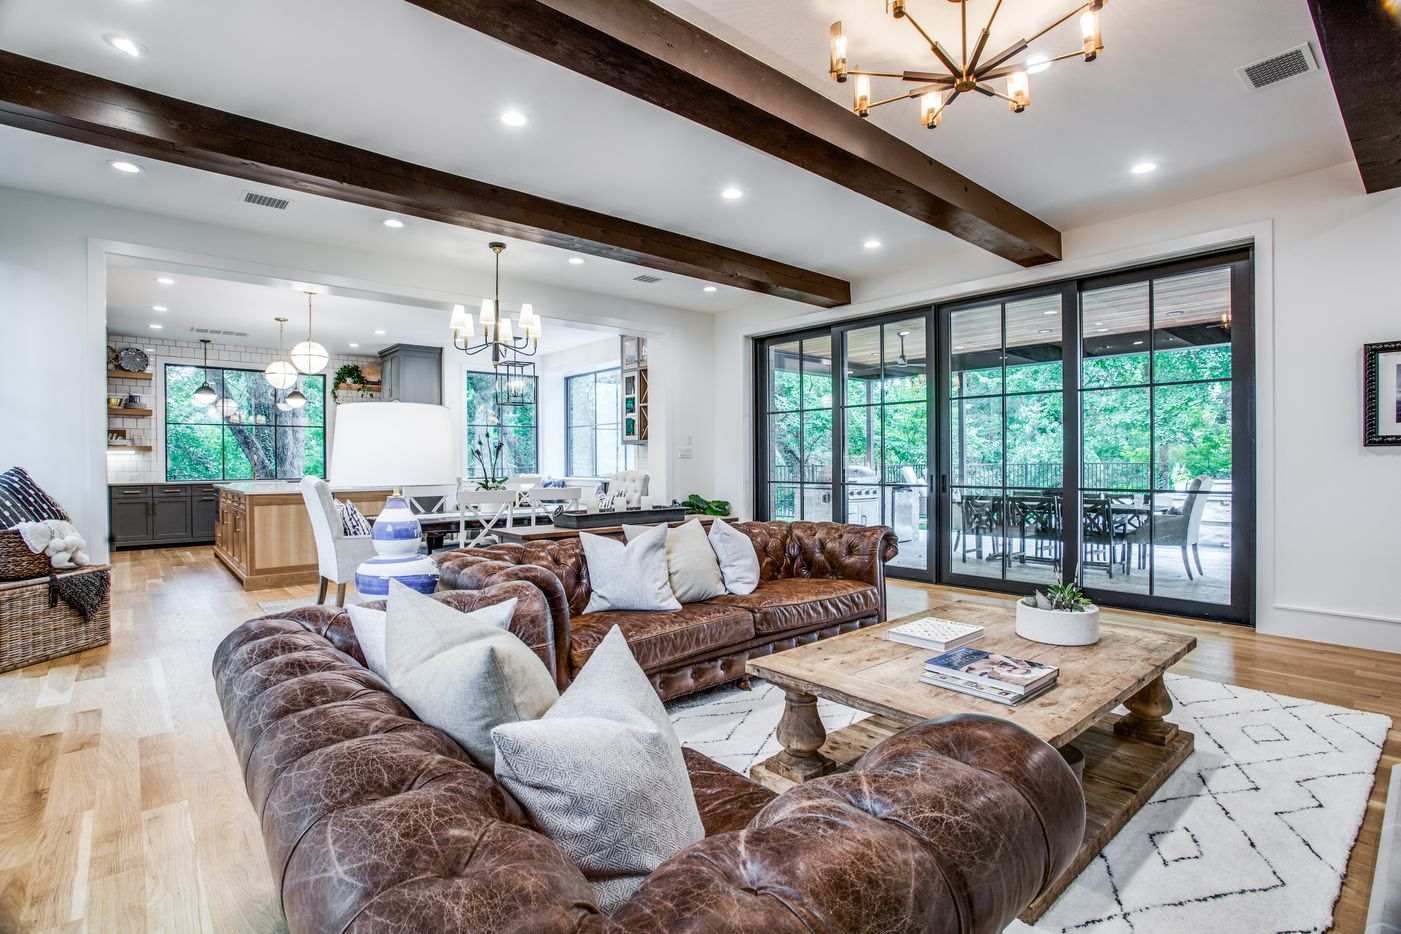 Interior of 6815 Carolyncrest Drive in Lakewood.